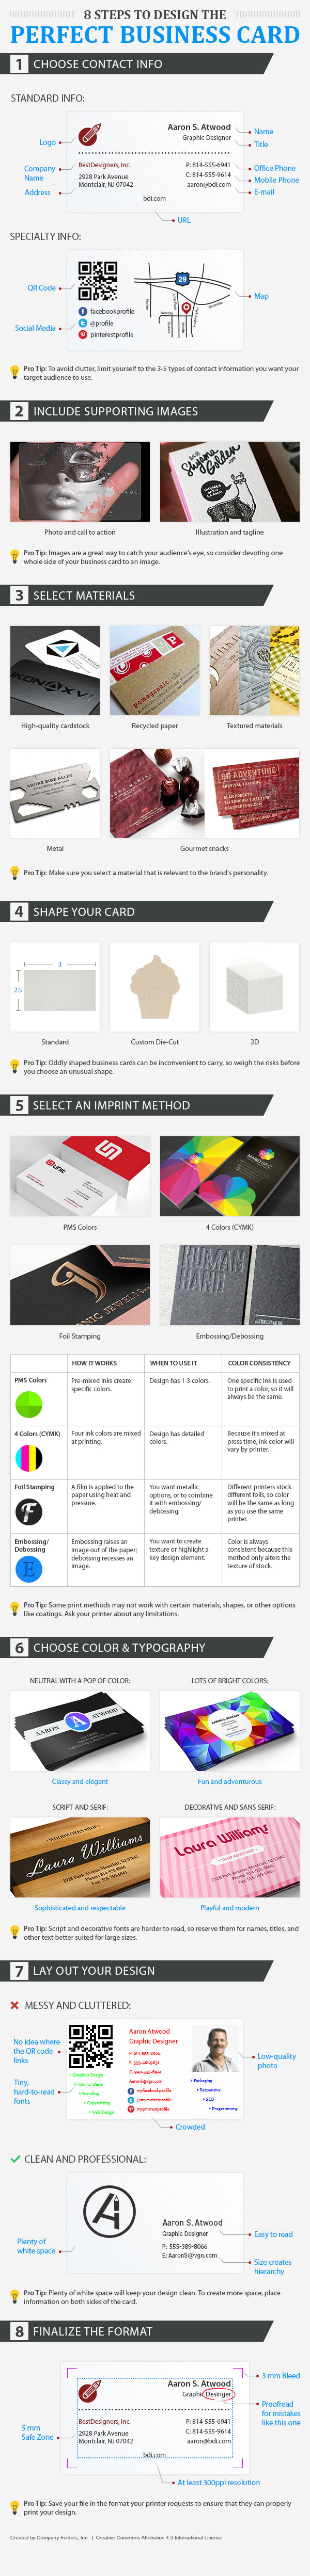 8 Tips to Design the Perfect Business Card